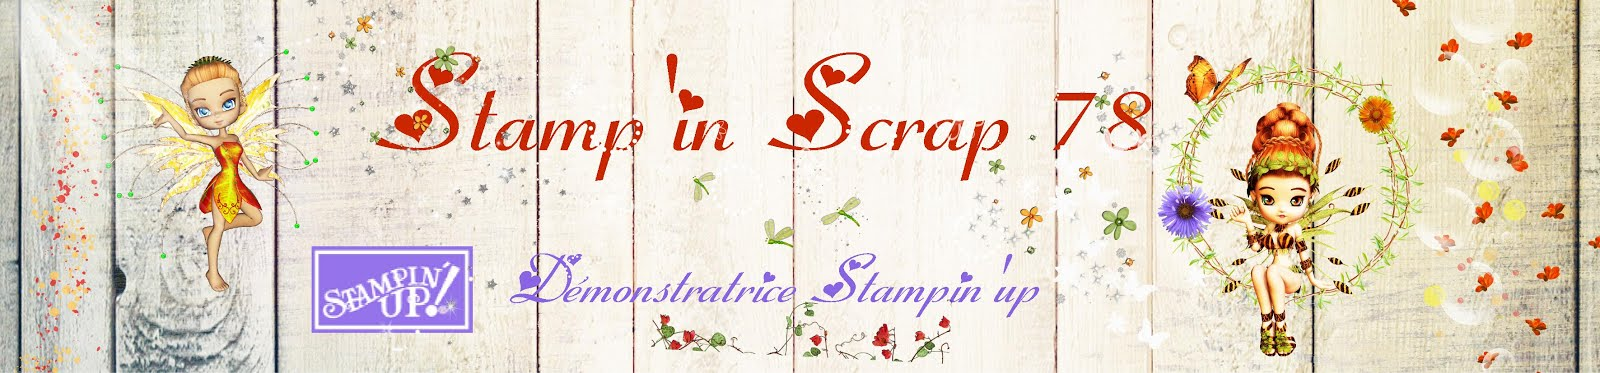 stamp'inScrap 78